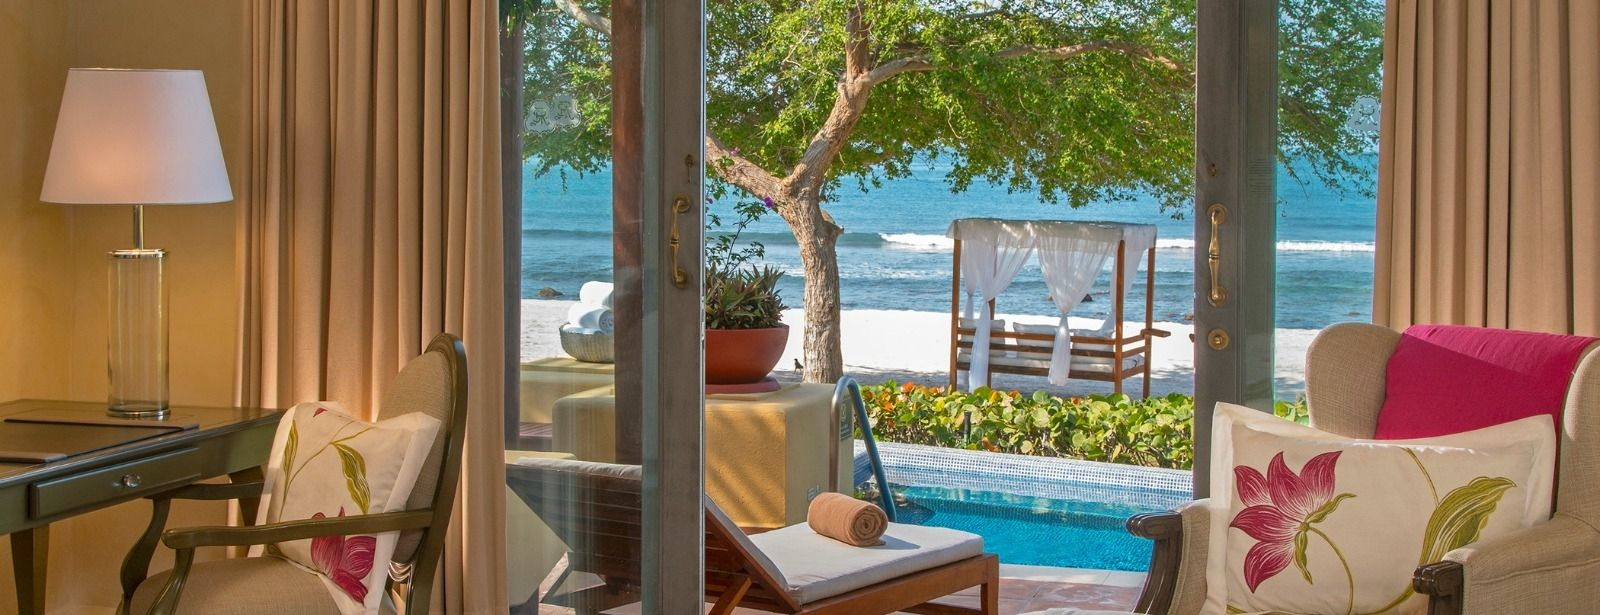 Luxury One-Bedroom Villa  - The St. Regis Punta Mita